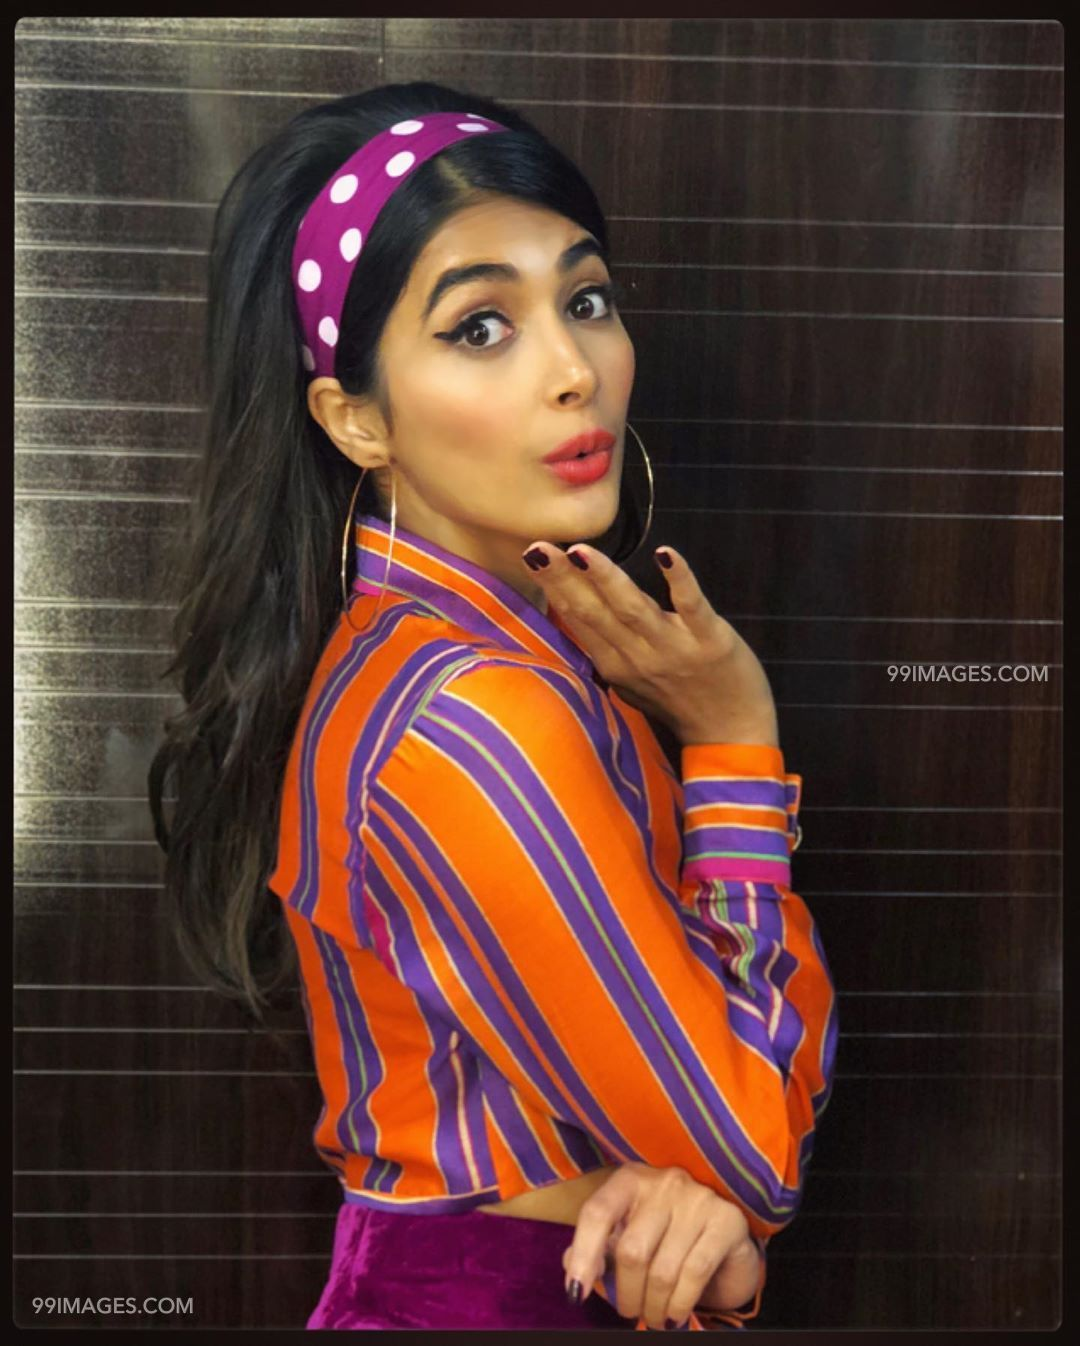 105+ Pooja Hegde HD Wallpapers/Images (1080p) [2019]